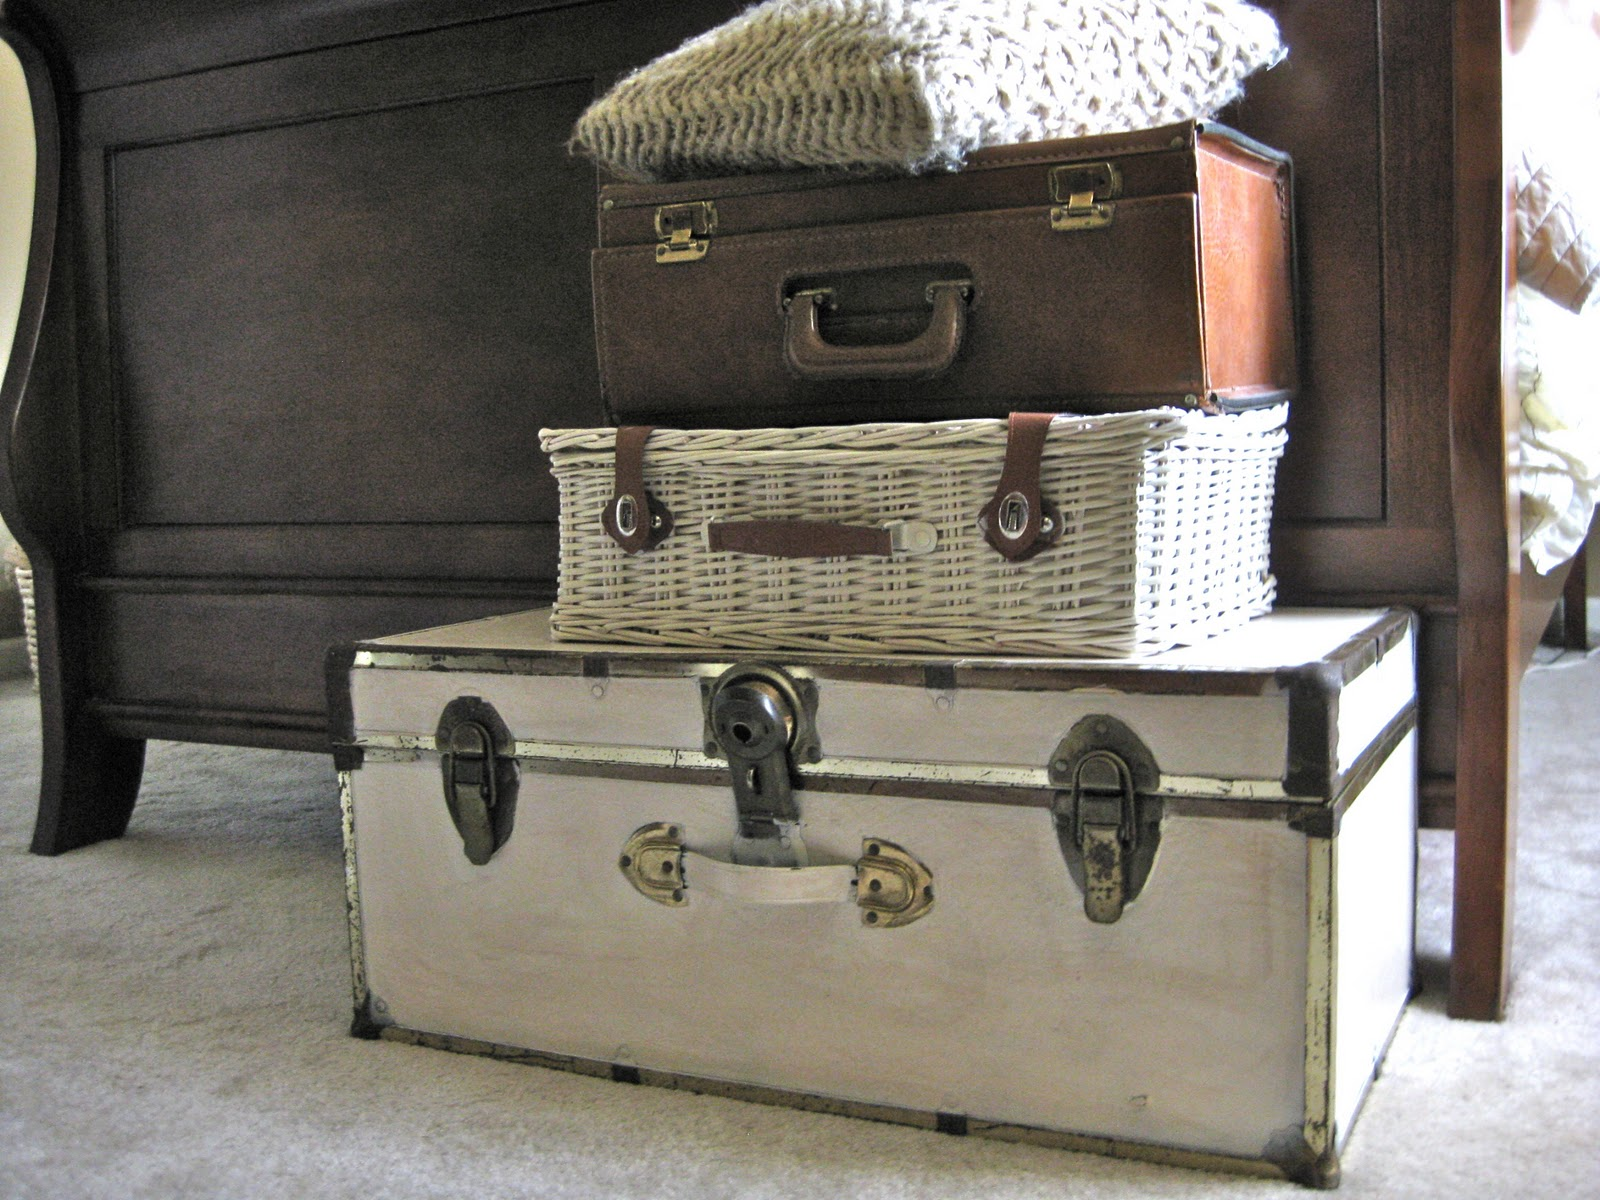 valises-antiques—menage-tri-rangement-epuration-maison-menage-organisation-minimalisme-decorer_deco_idees_solutions_trucs_conseils_comment_decoration_interieure_design_interieur_ameublement_quebec_canada